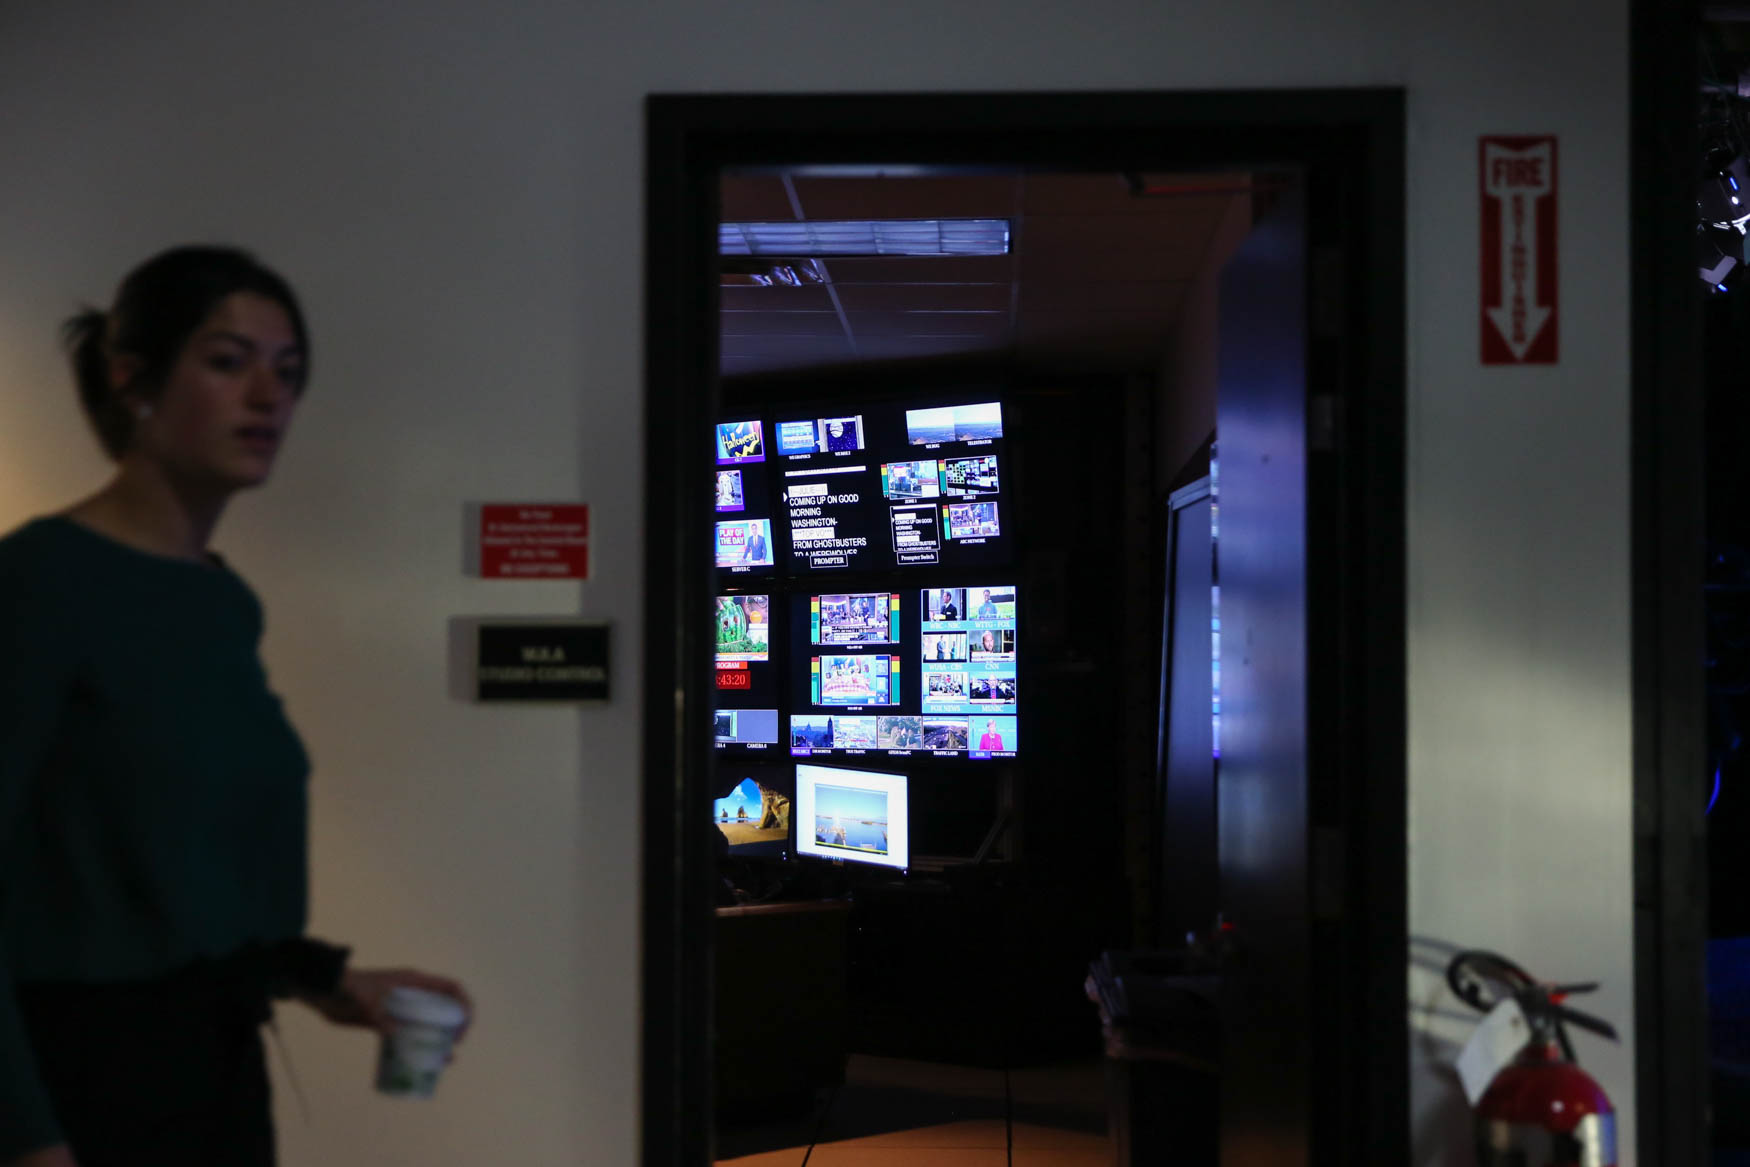 The control room where behind-the-scenes staff can monitor what's happening on air. (Amanda Andrade-Rhoades/DC Refined)